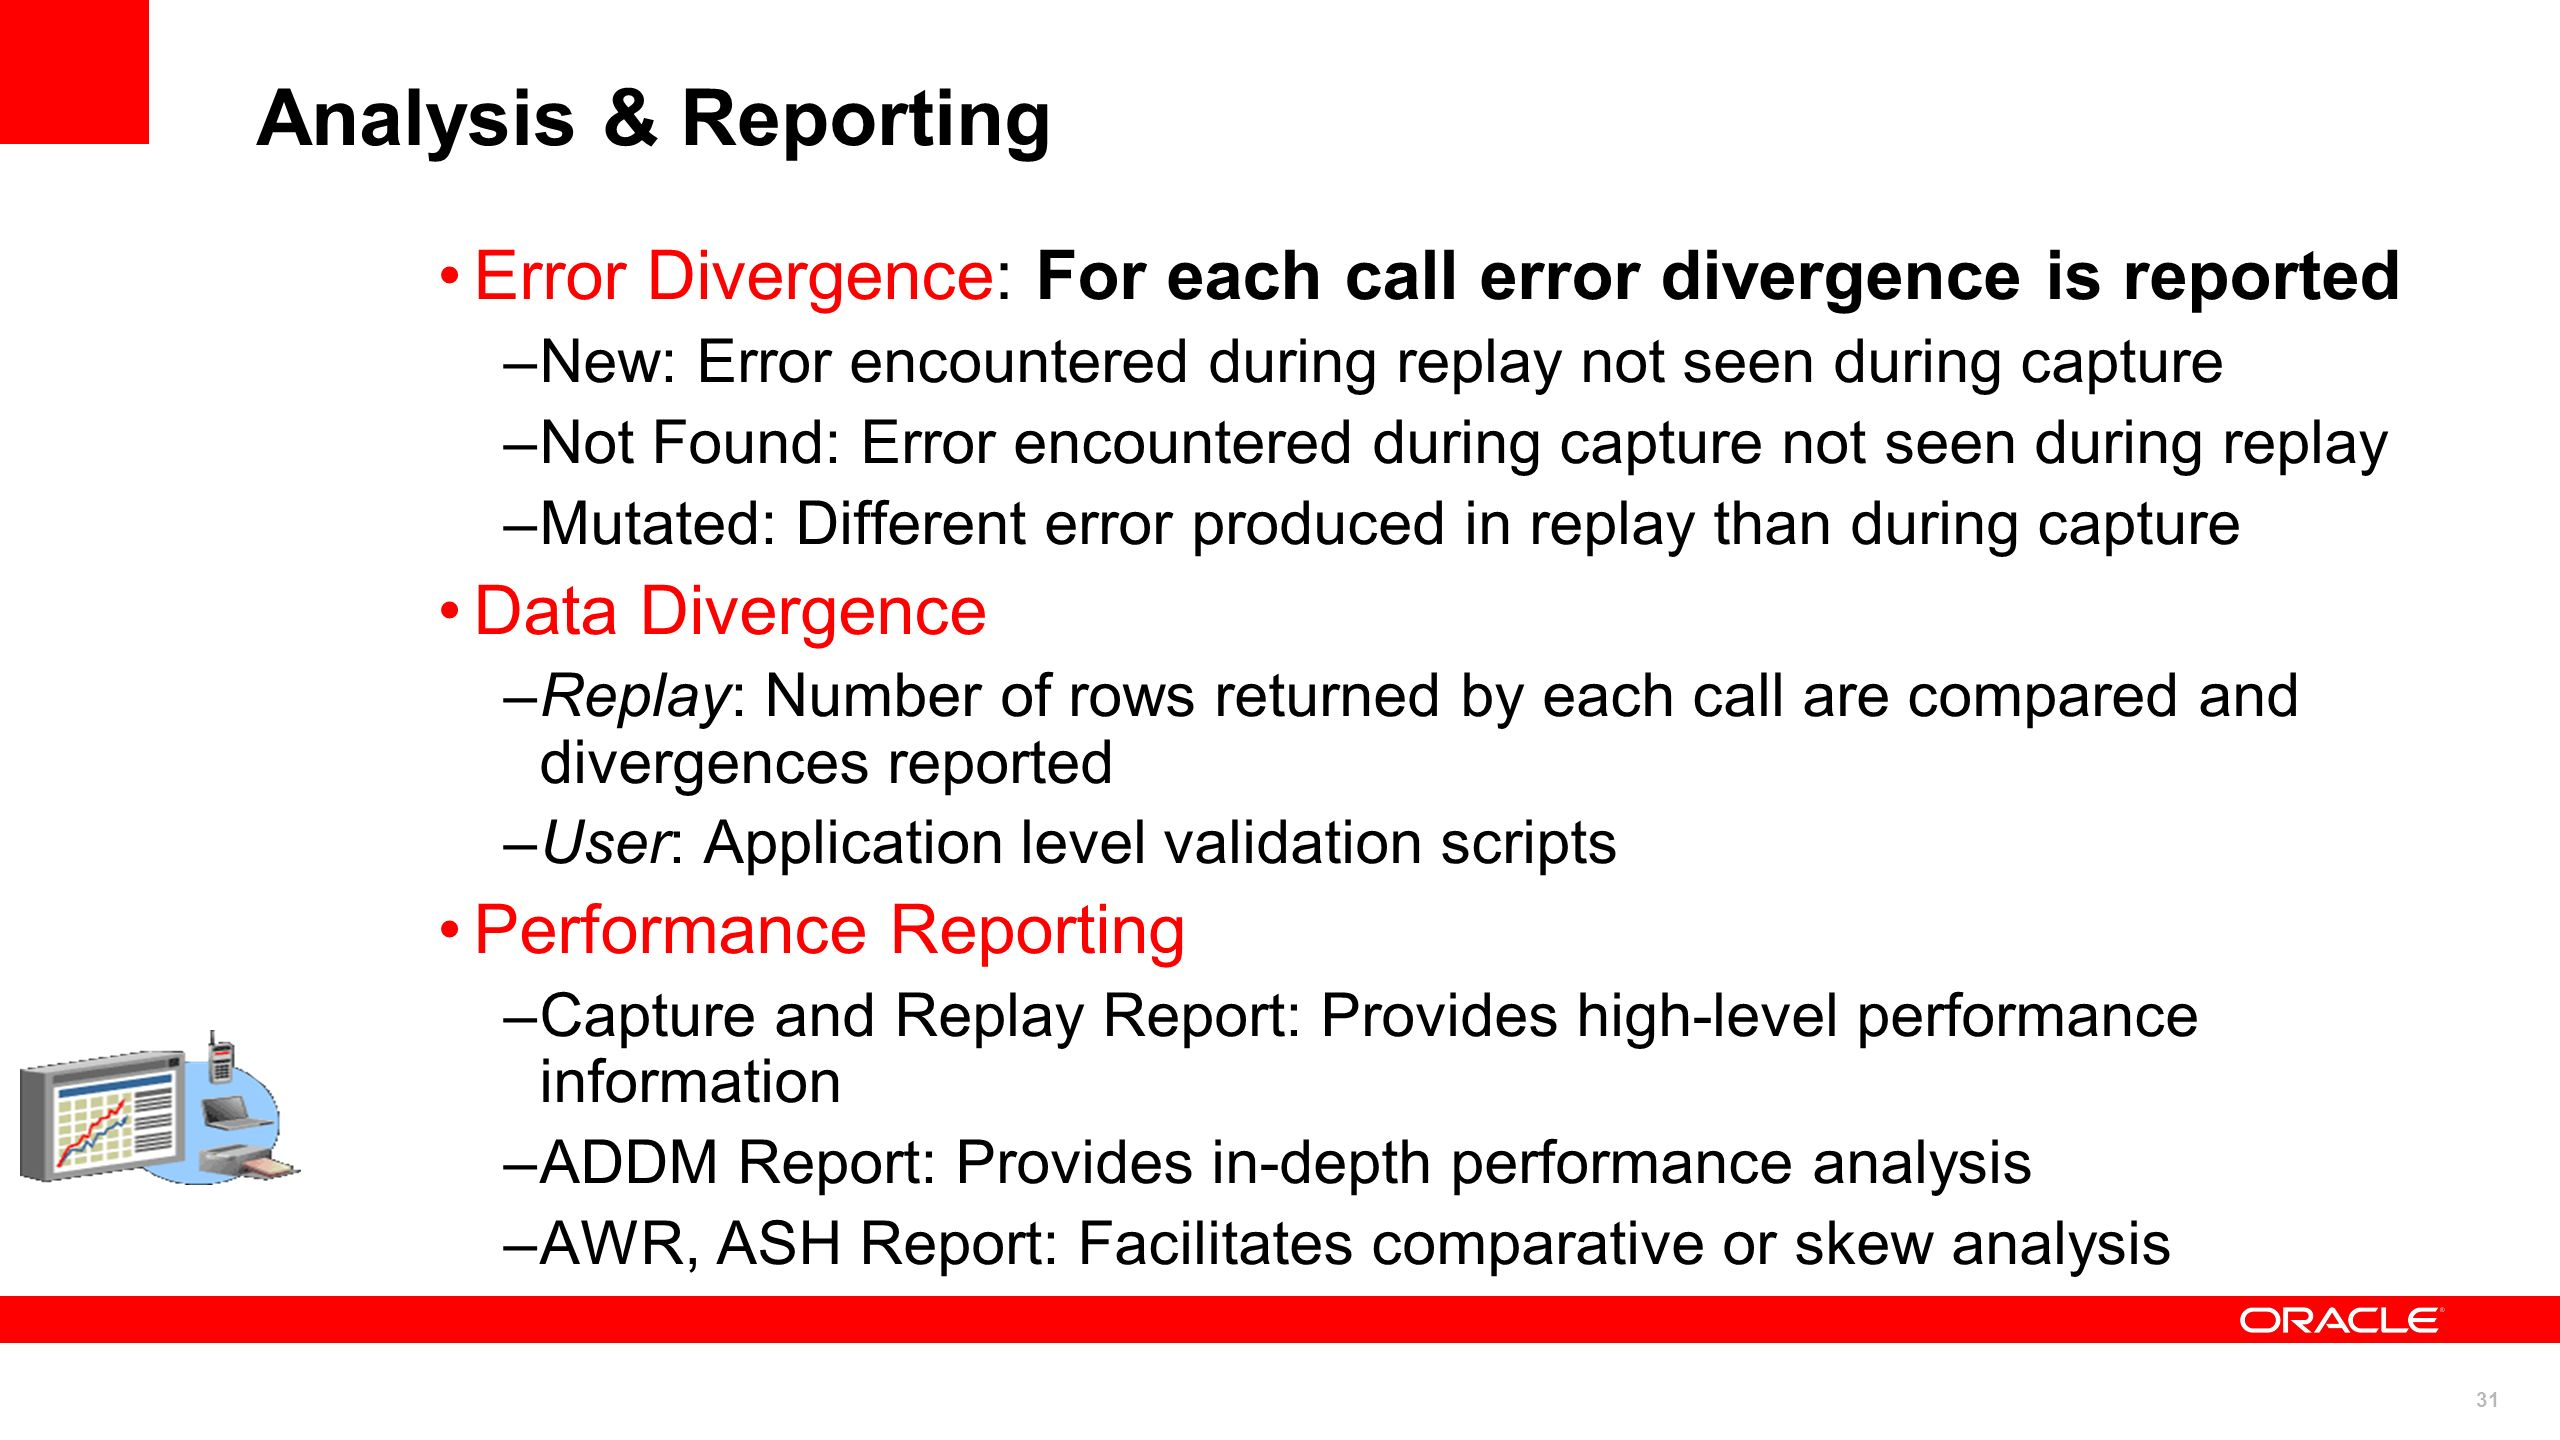 Analysis & Reporting Error Divergence: For each call error divergence is reported. New: Error encountered during replay not seen during capture.